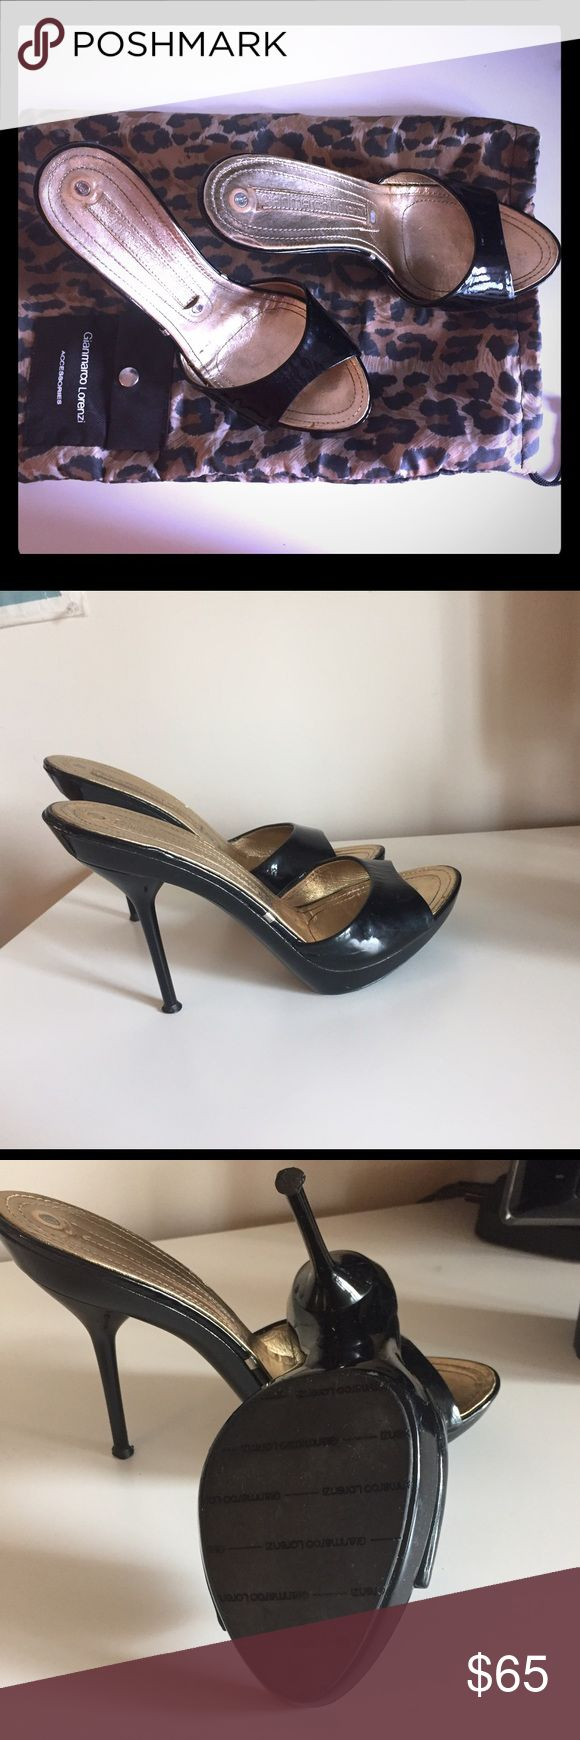 Gianmarco Lorenzi Summer  High Heels Summer classy  patent leather shoes. Very good condition. Gianmarco Lorenzi Shoes